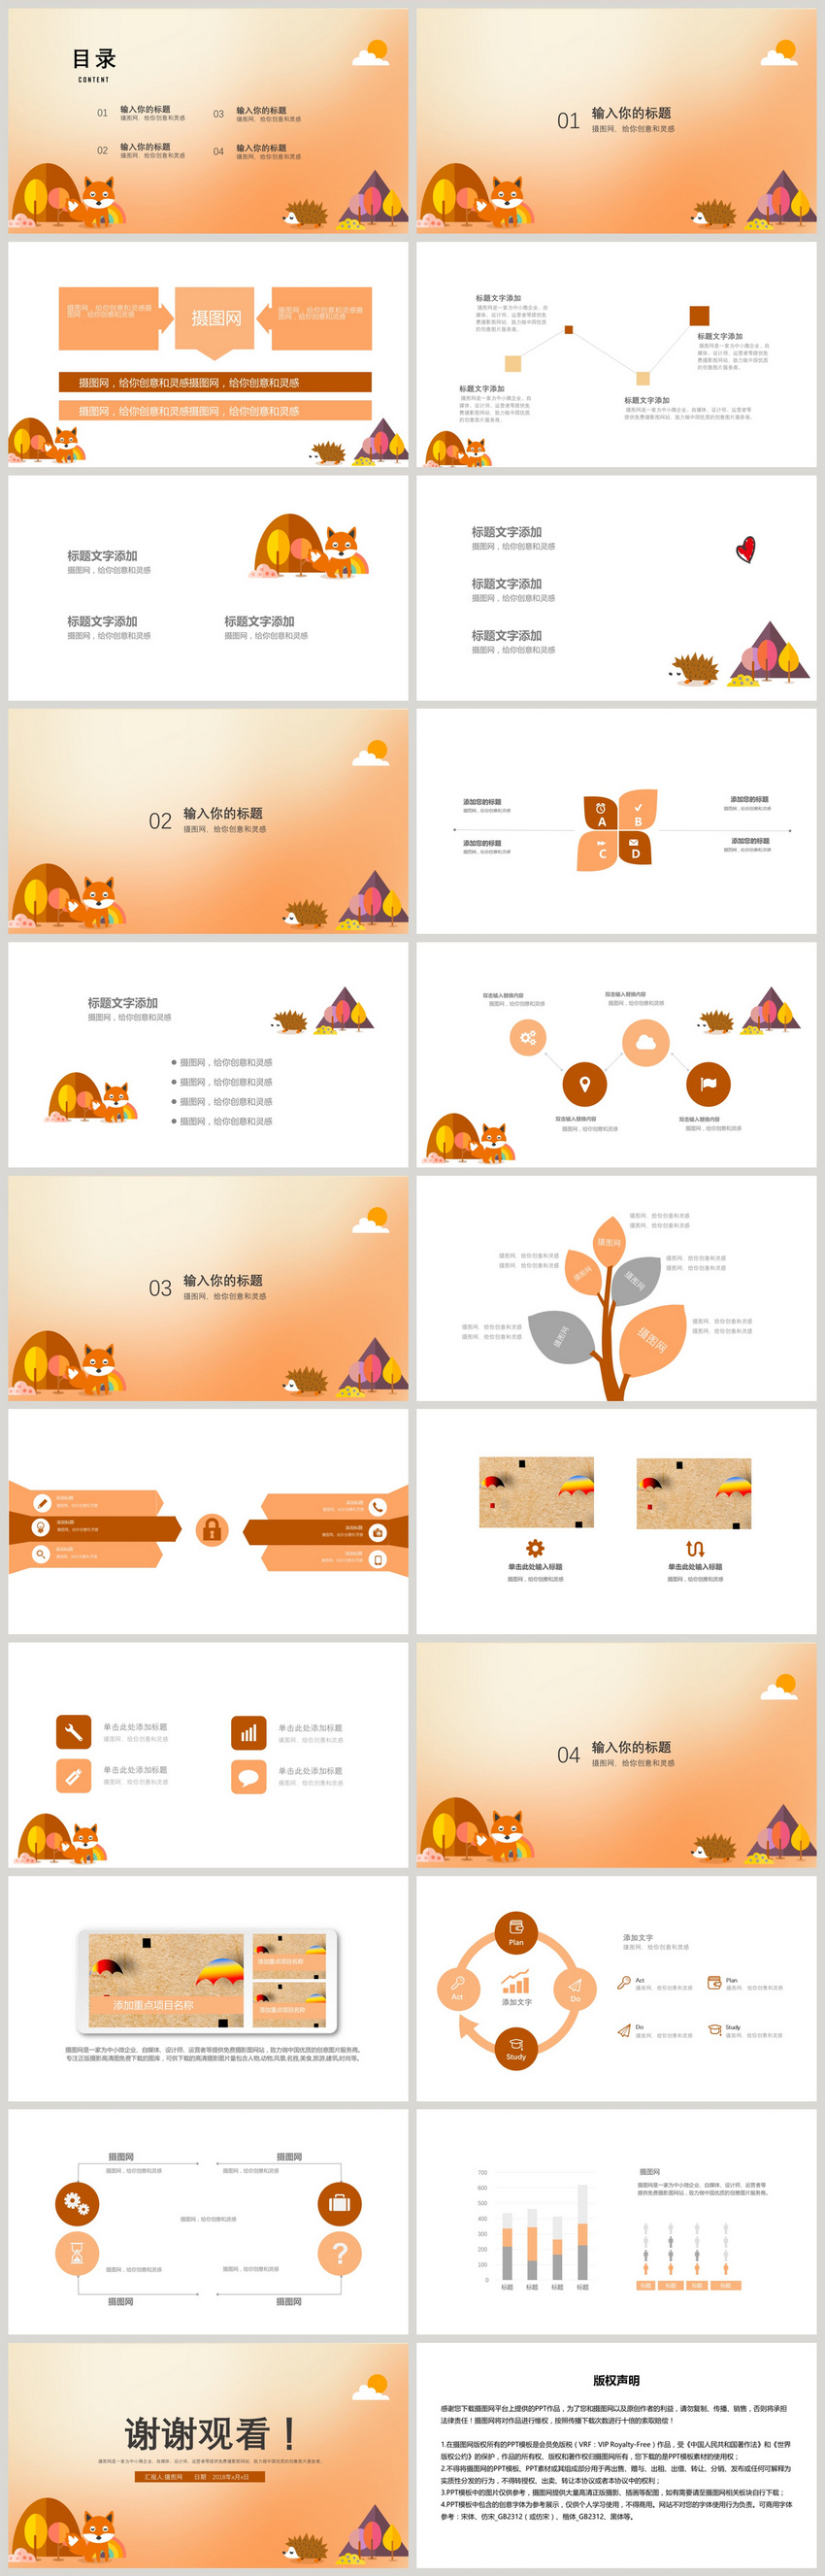 Education And Training Cartoon Ppt Template Powerpoint Templeteppt